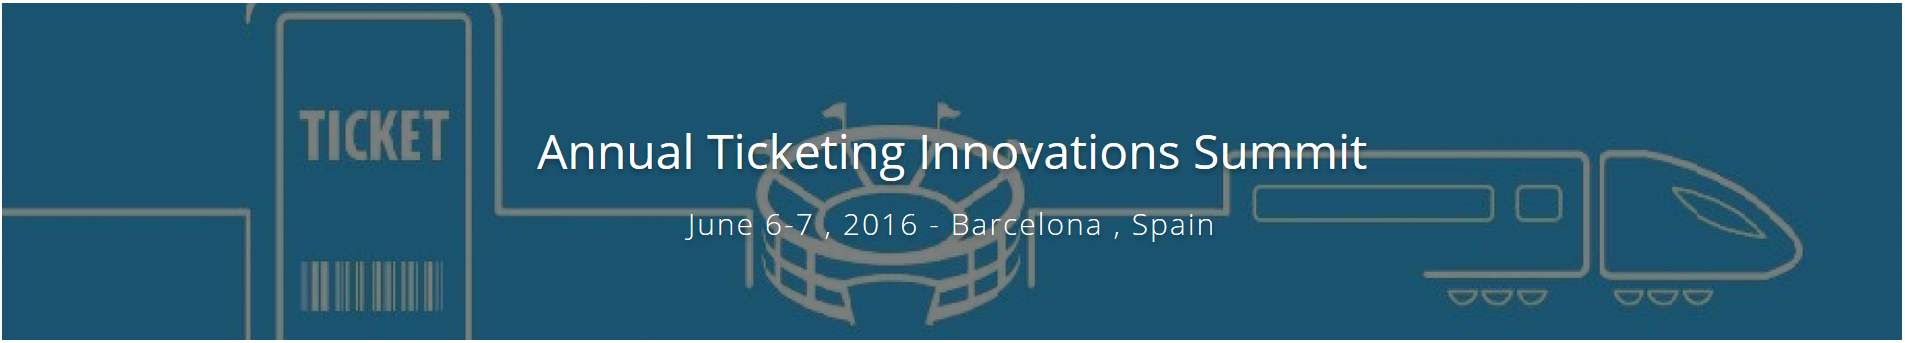 MASAI presented at the Annual Ticketing Innovations Summit (Barcelona, 6 to 7 June 2016)